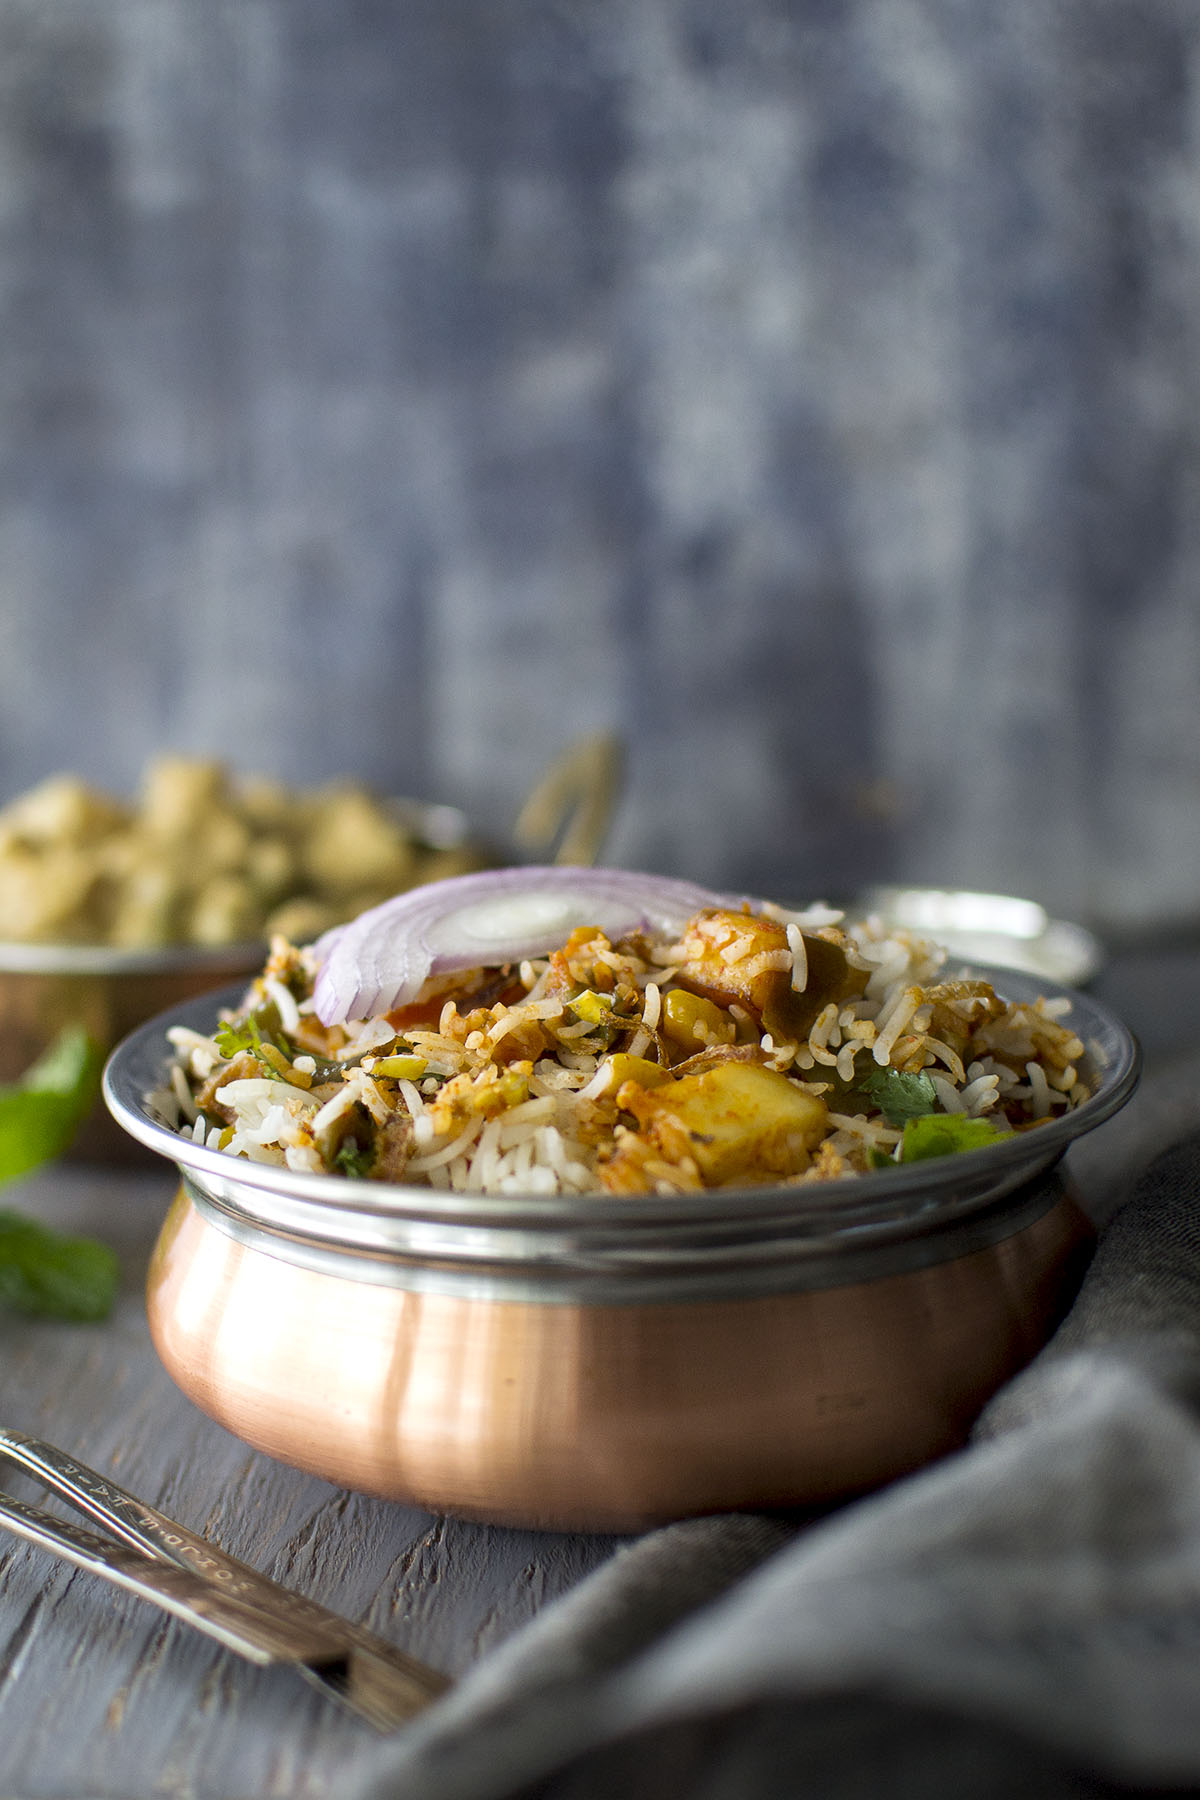 Copper bowl with Vegetable dum biryani topped with sliced red onion